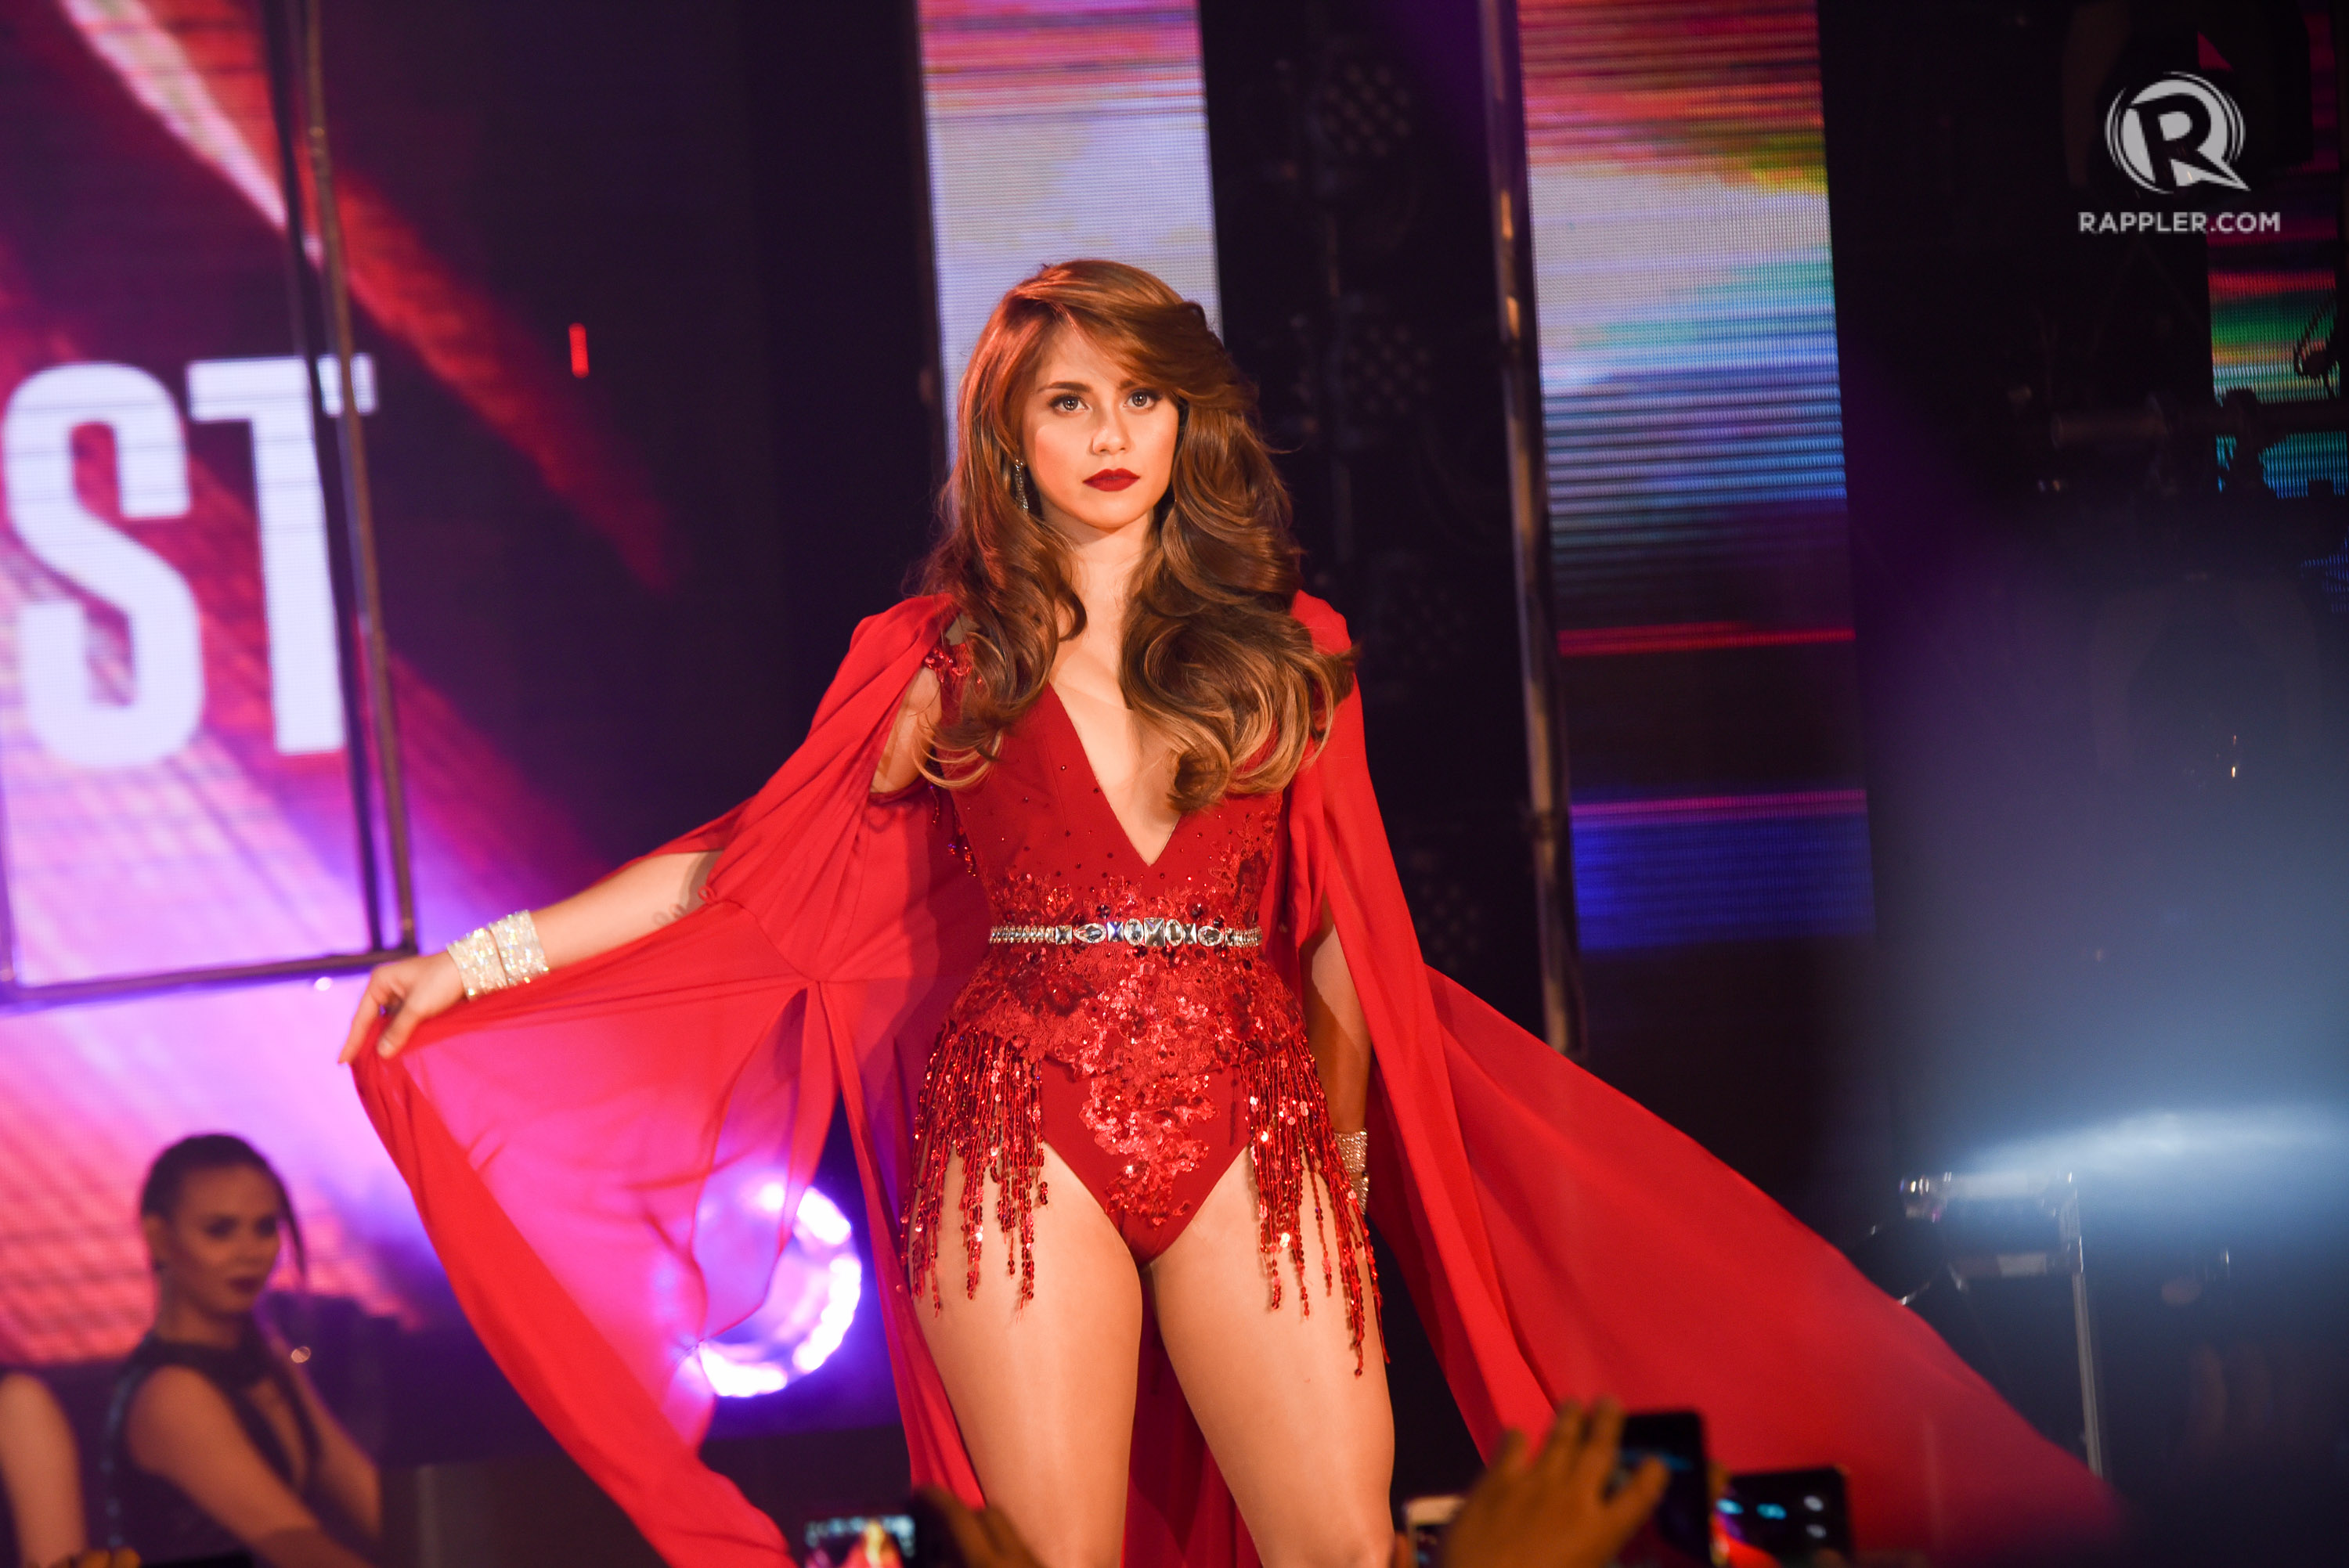 IN PHOTOS: Jessy Mendiola at FHM's 100 Sexiest 2016